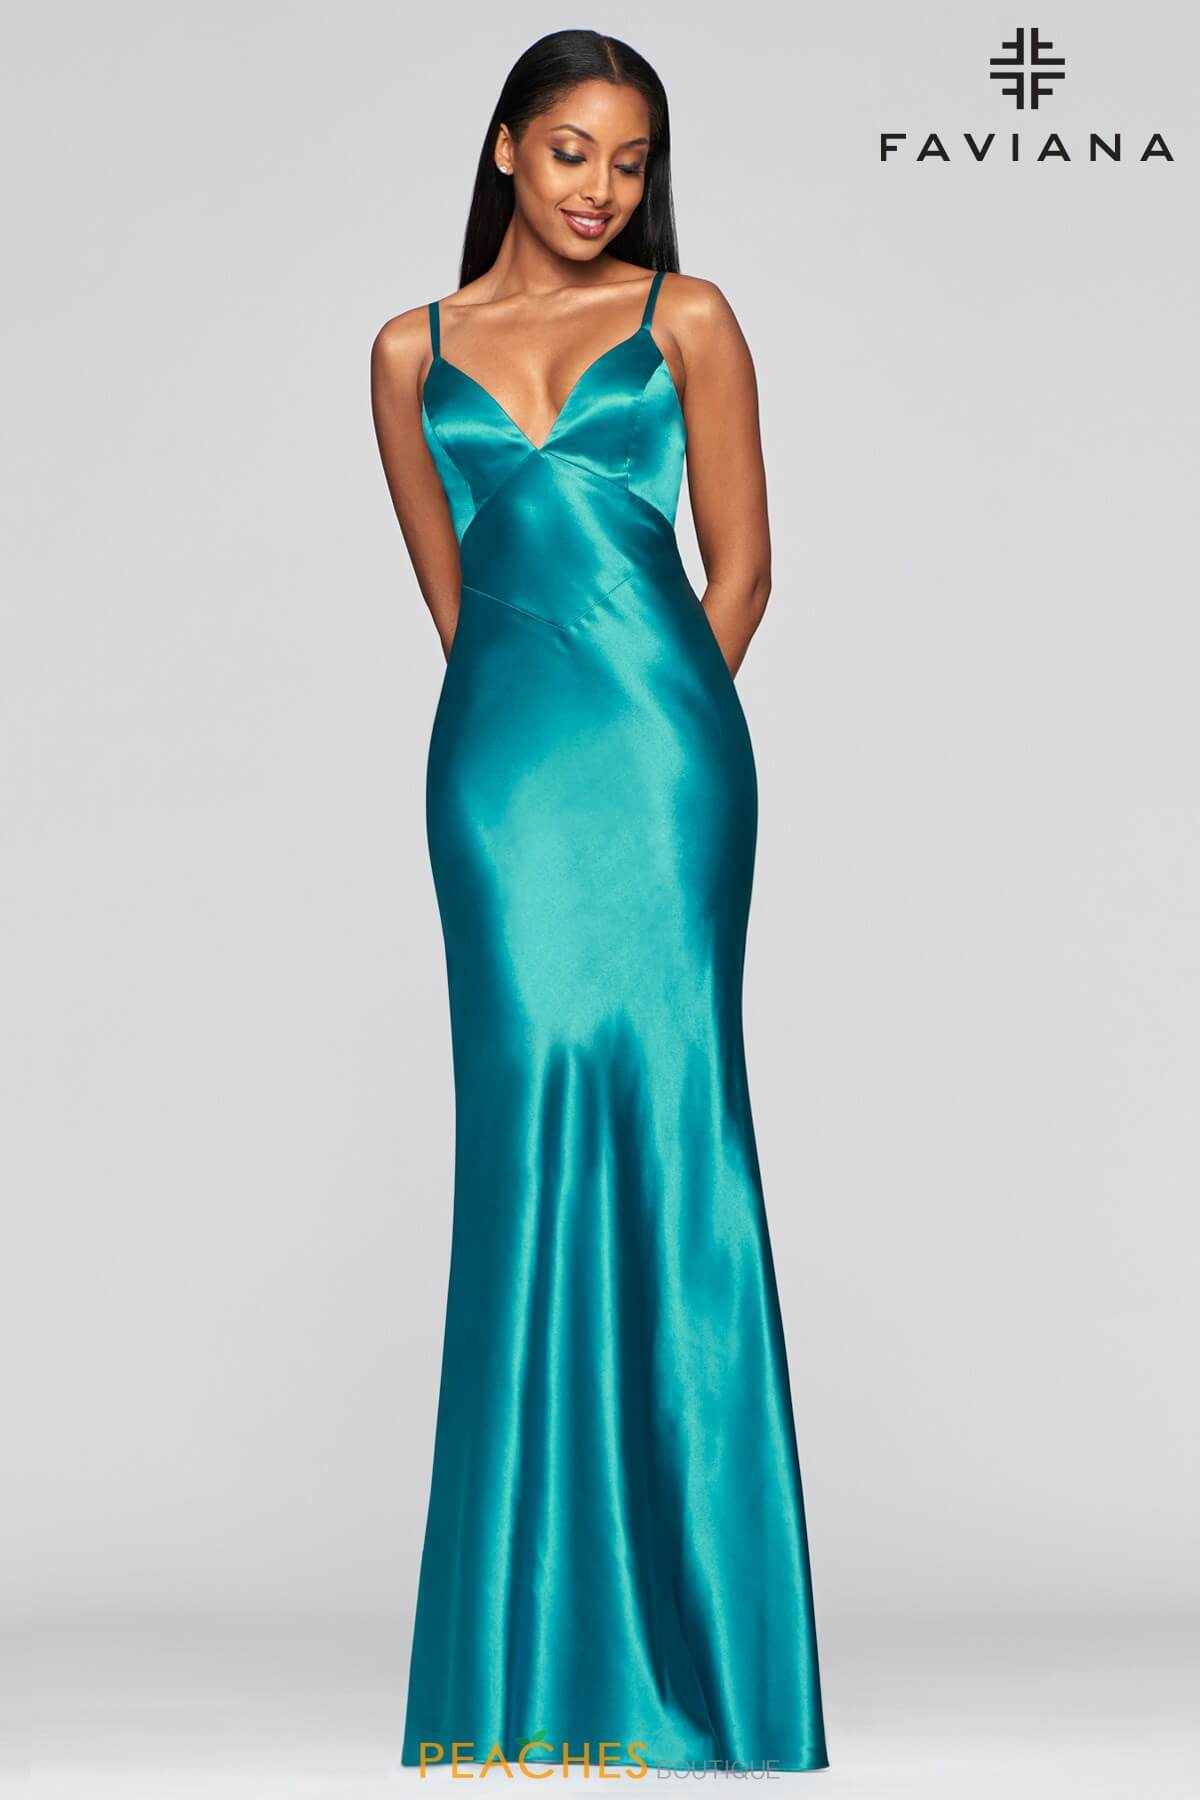 Style S10405 Faviana Green Size 8 Plunge Tall Height Mermaid Dress on Queenly